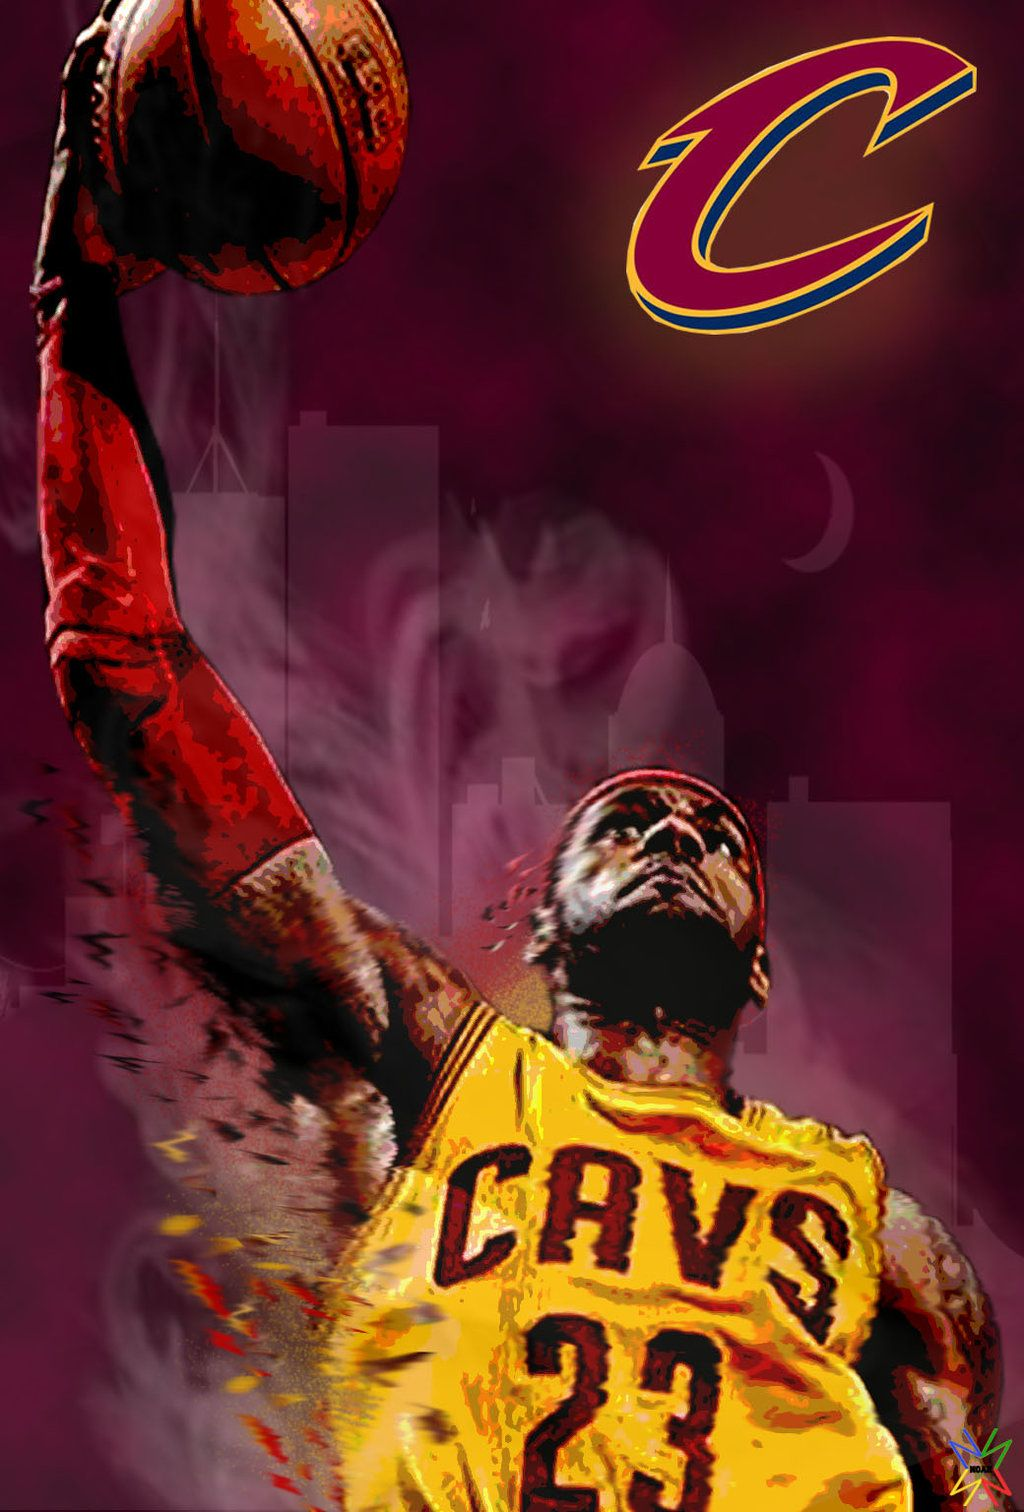 Lebron james dunk iphone 7 wallpaper 2018 wallpapers hd lebron lebron james dunk iphone 7 wallpaper best wallpaper hd voltagebd Image collections